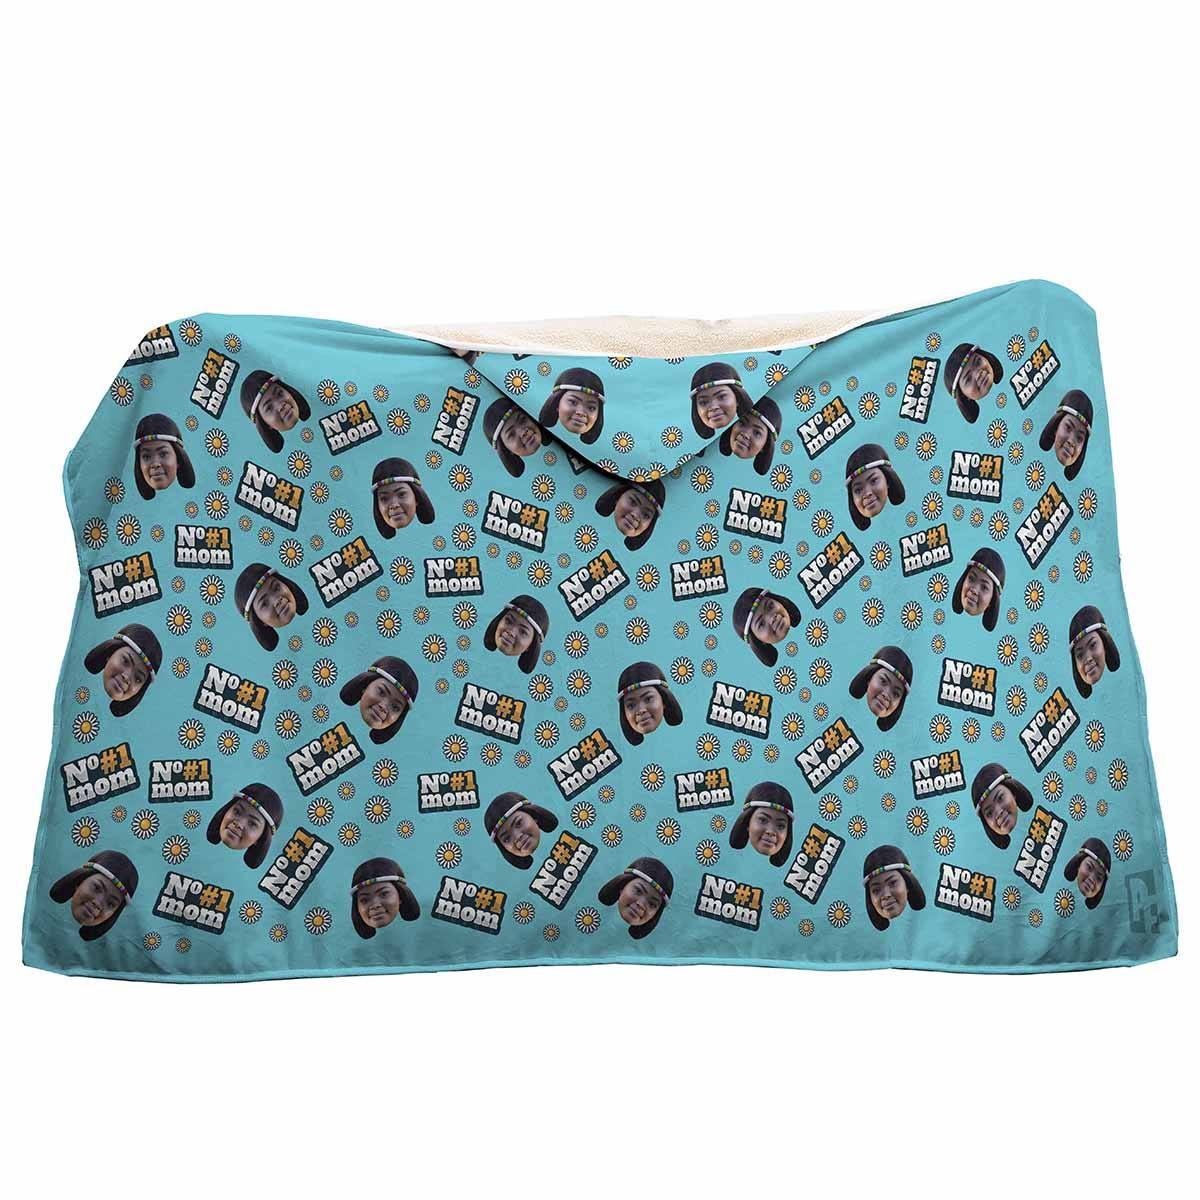 blue #1 Mom hooded blanket personalized with photo of face printed on it